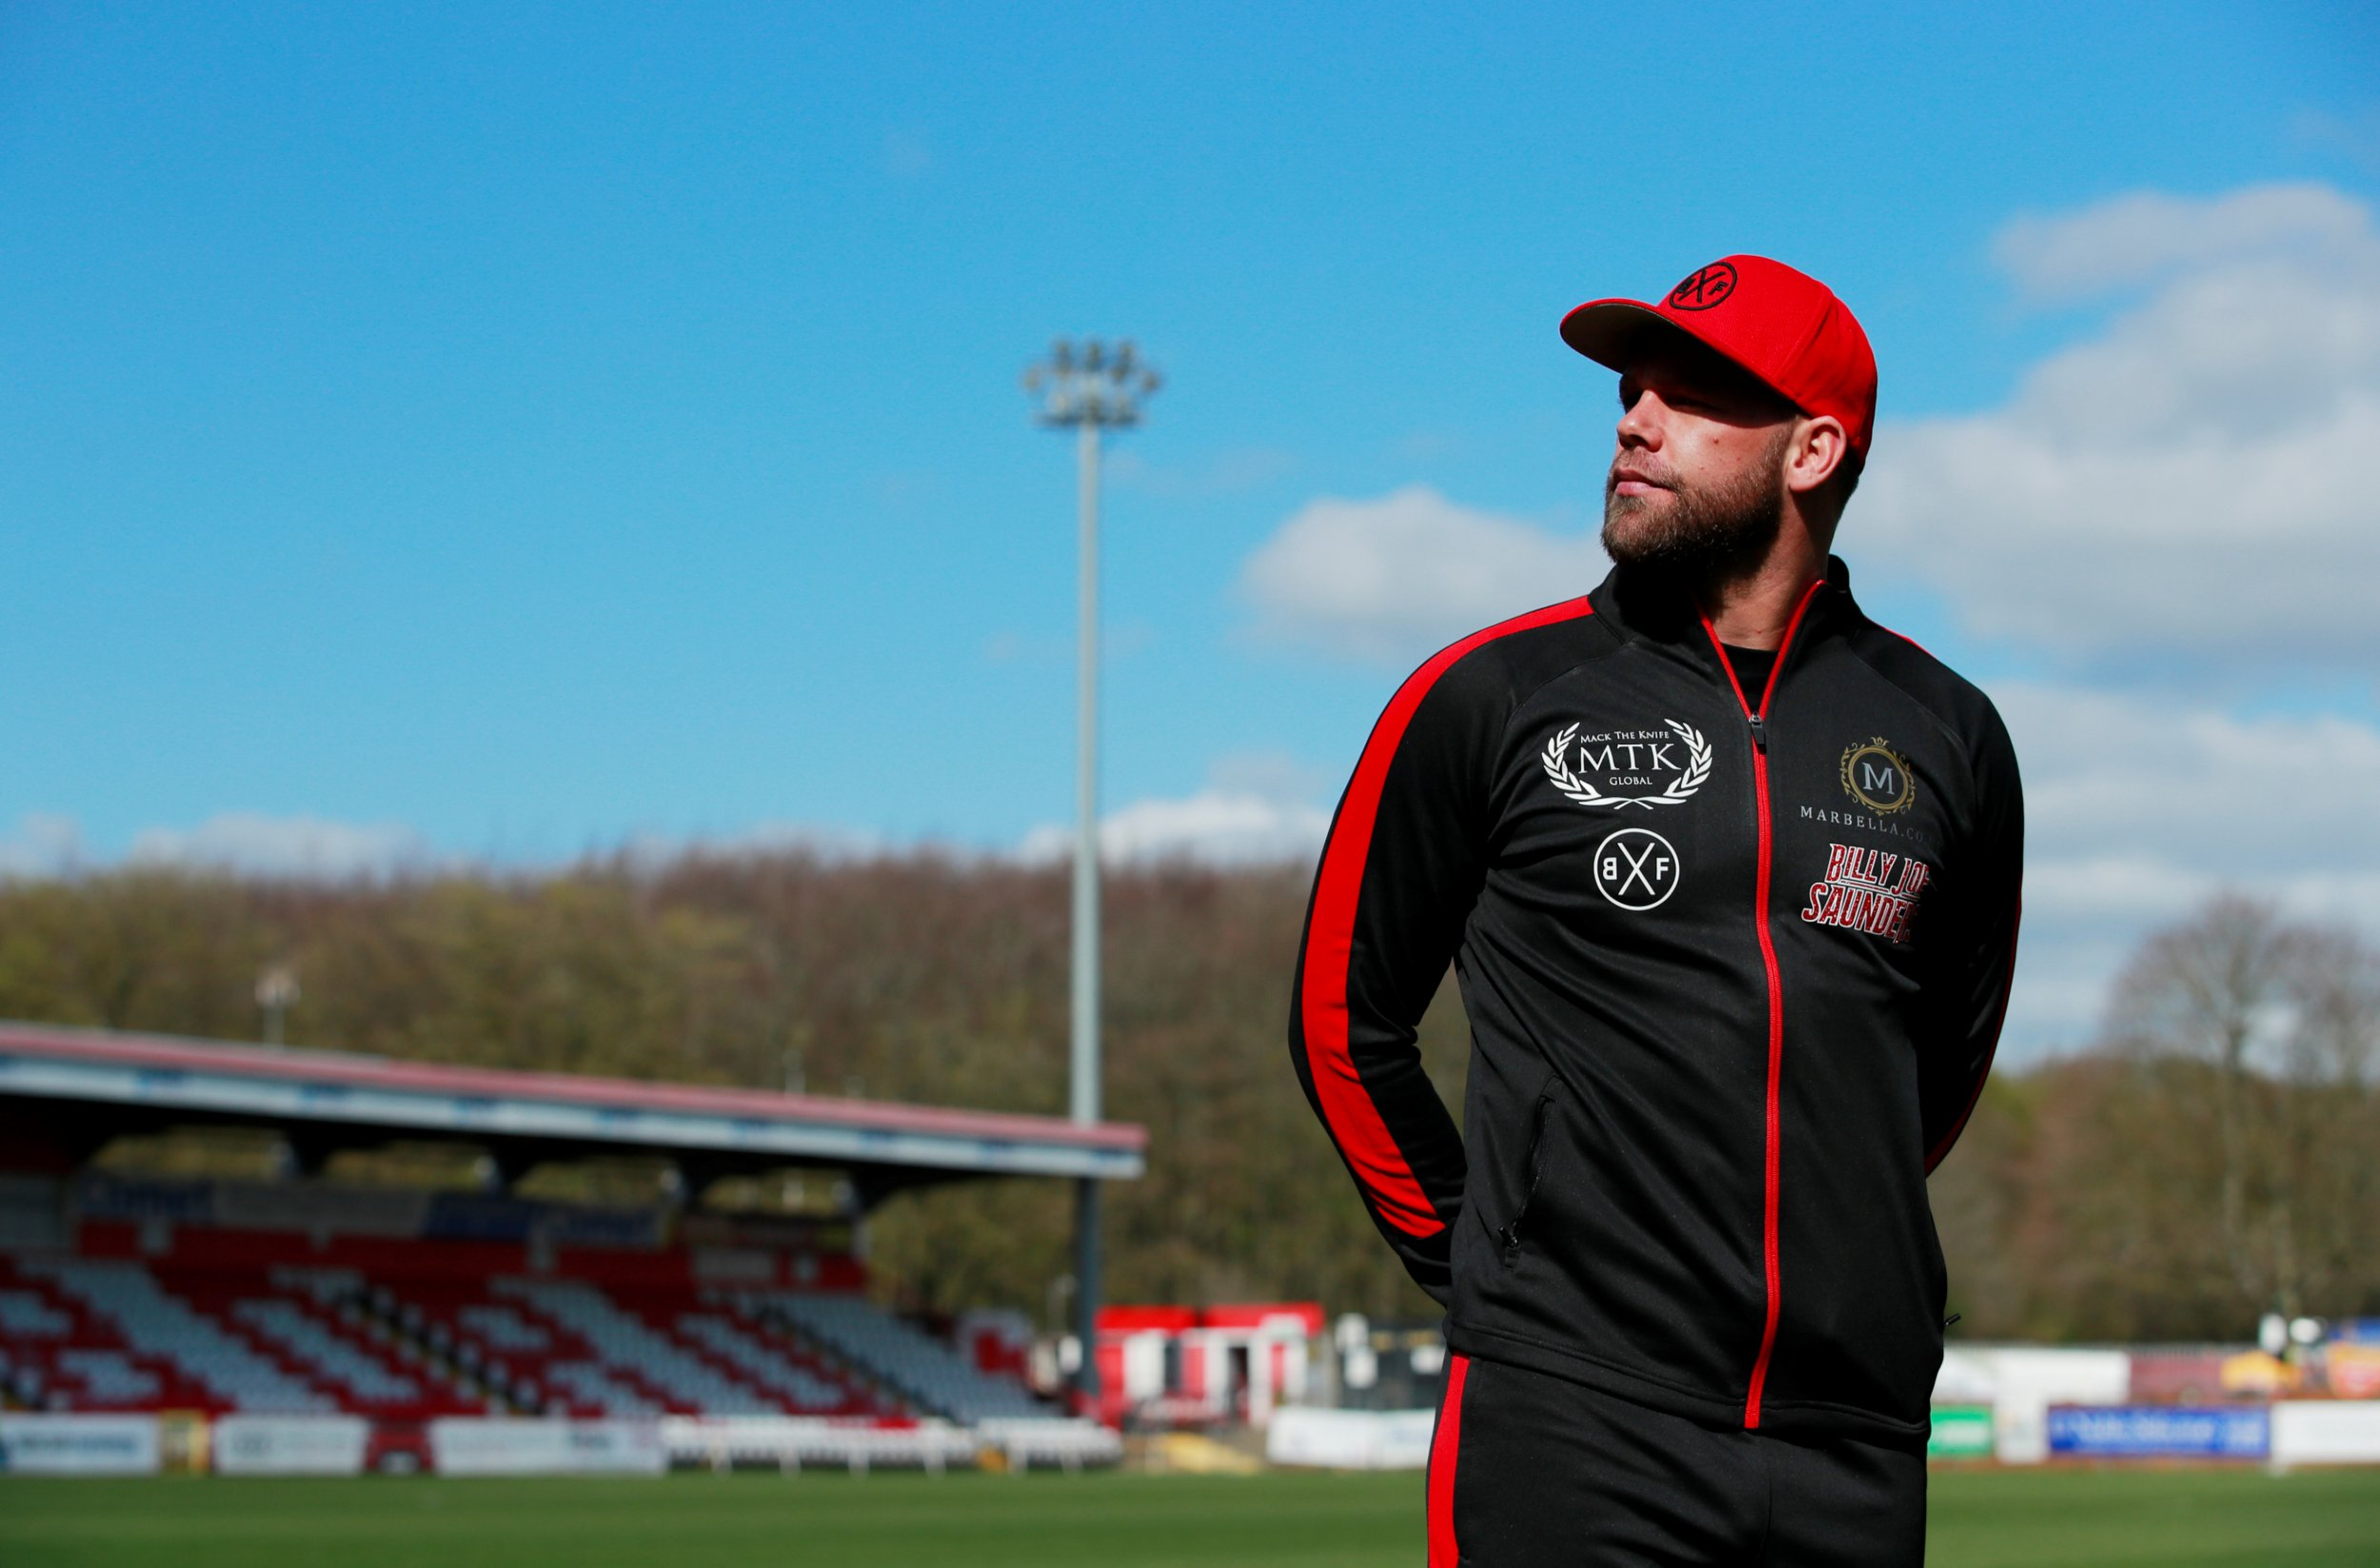 Boxing - Billy Joe Saunders Press Conference - The Lamex Stadium, Stevenage, Britain - March 25, 2019 Billy Joe Saunders poses after the press conference Action Images/Andrew Couldridge